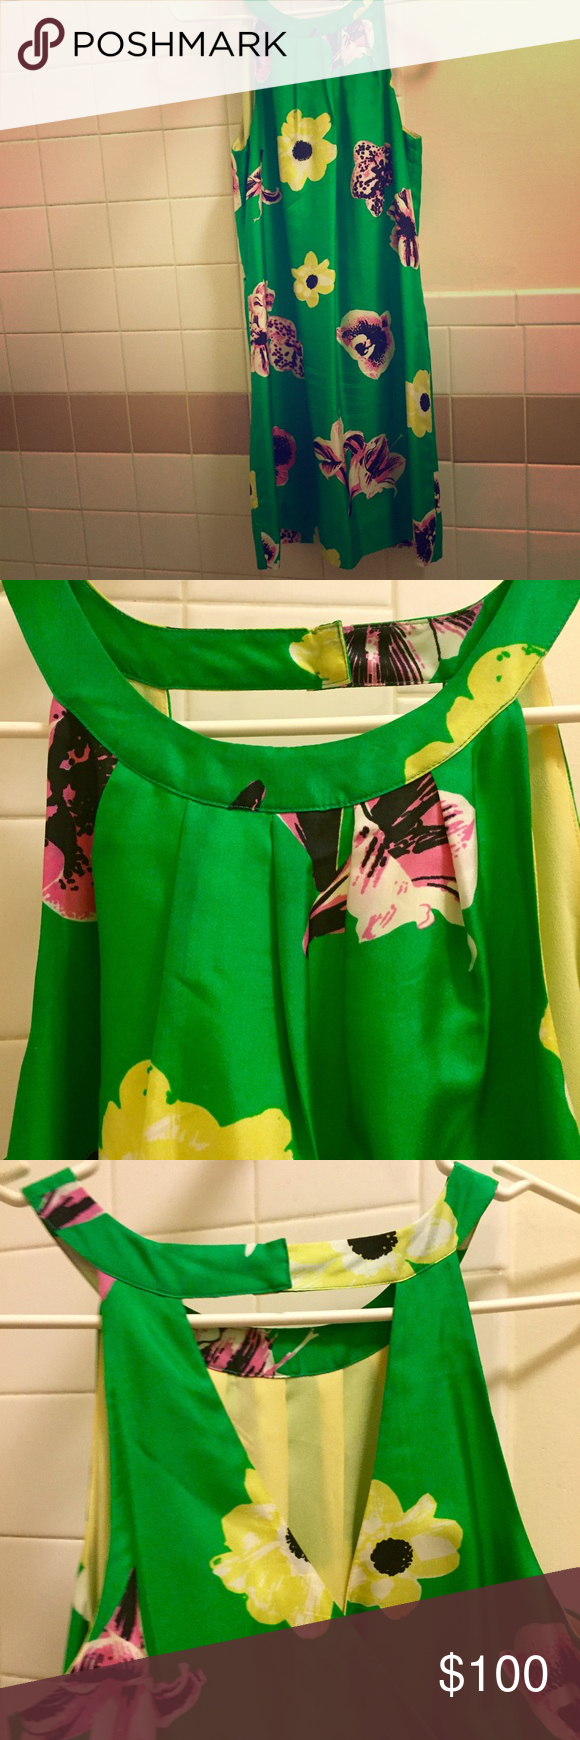 "EUC J.Crew Punk Floral Silk Swoop Dress This is a beautiful silk dupioni ""swoop"" mini dress by J. Crew in the popular ""punk floral"" pattern. Was sold out in many stores and very sought after. Lined. From a couple of years ago but only worn 2-3 times and then professionally cleaned. Snap closure at neck and keyhole shows off your back. Great for summer and very chic! J. Crew Dresses Mini"